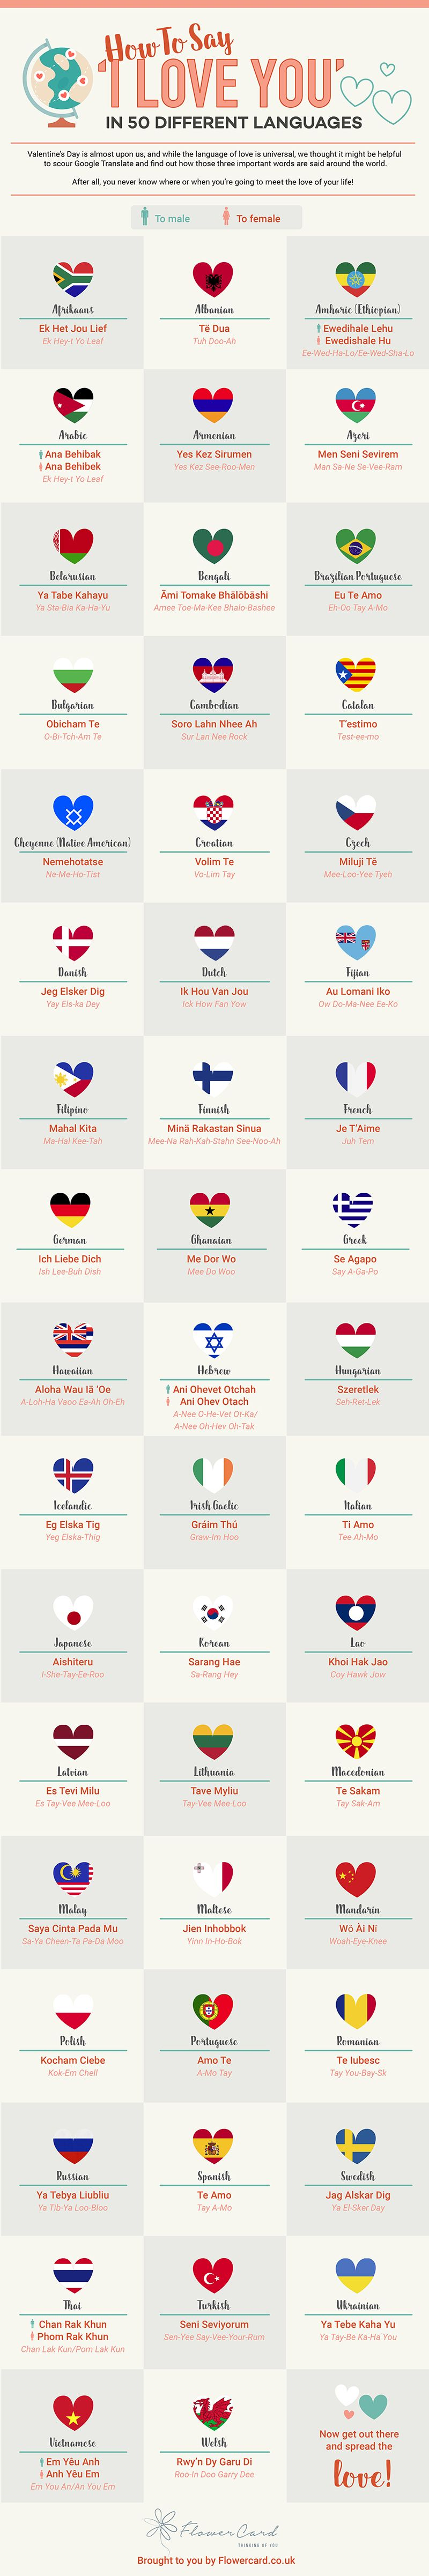 How To Say I Love You In 50 Different Languages Infographic Matador Network Words In Different Languages Educational Infographic Different Languages